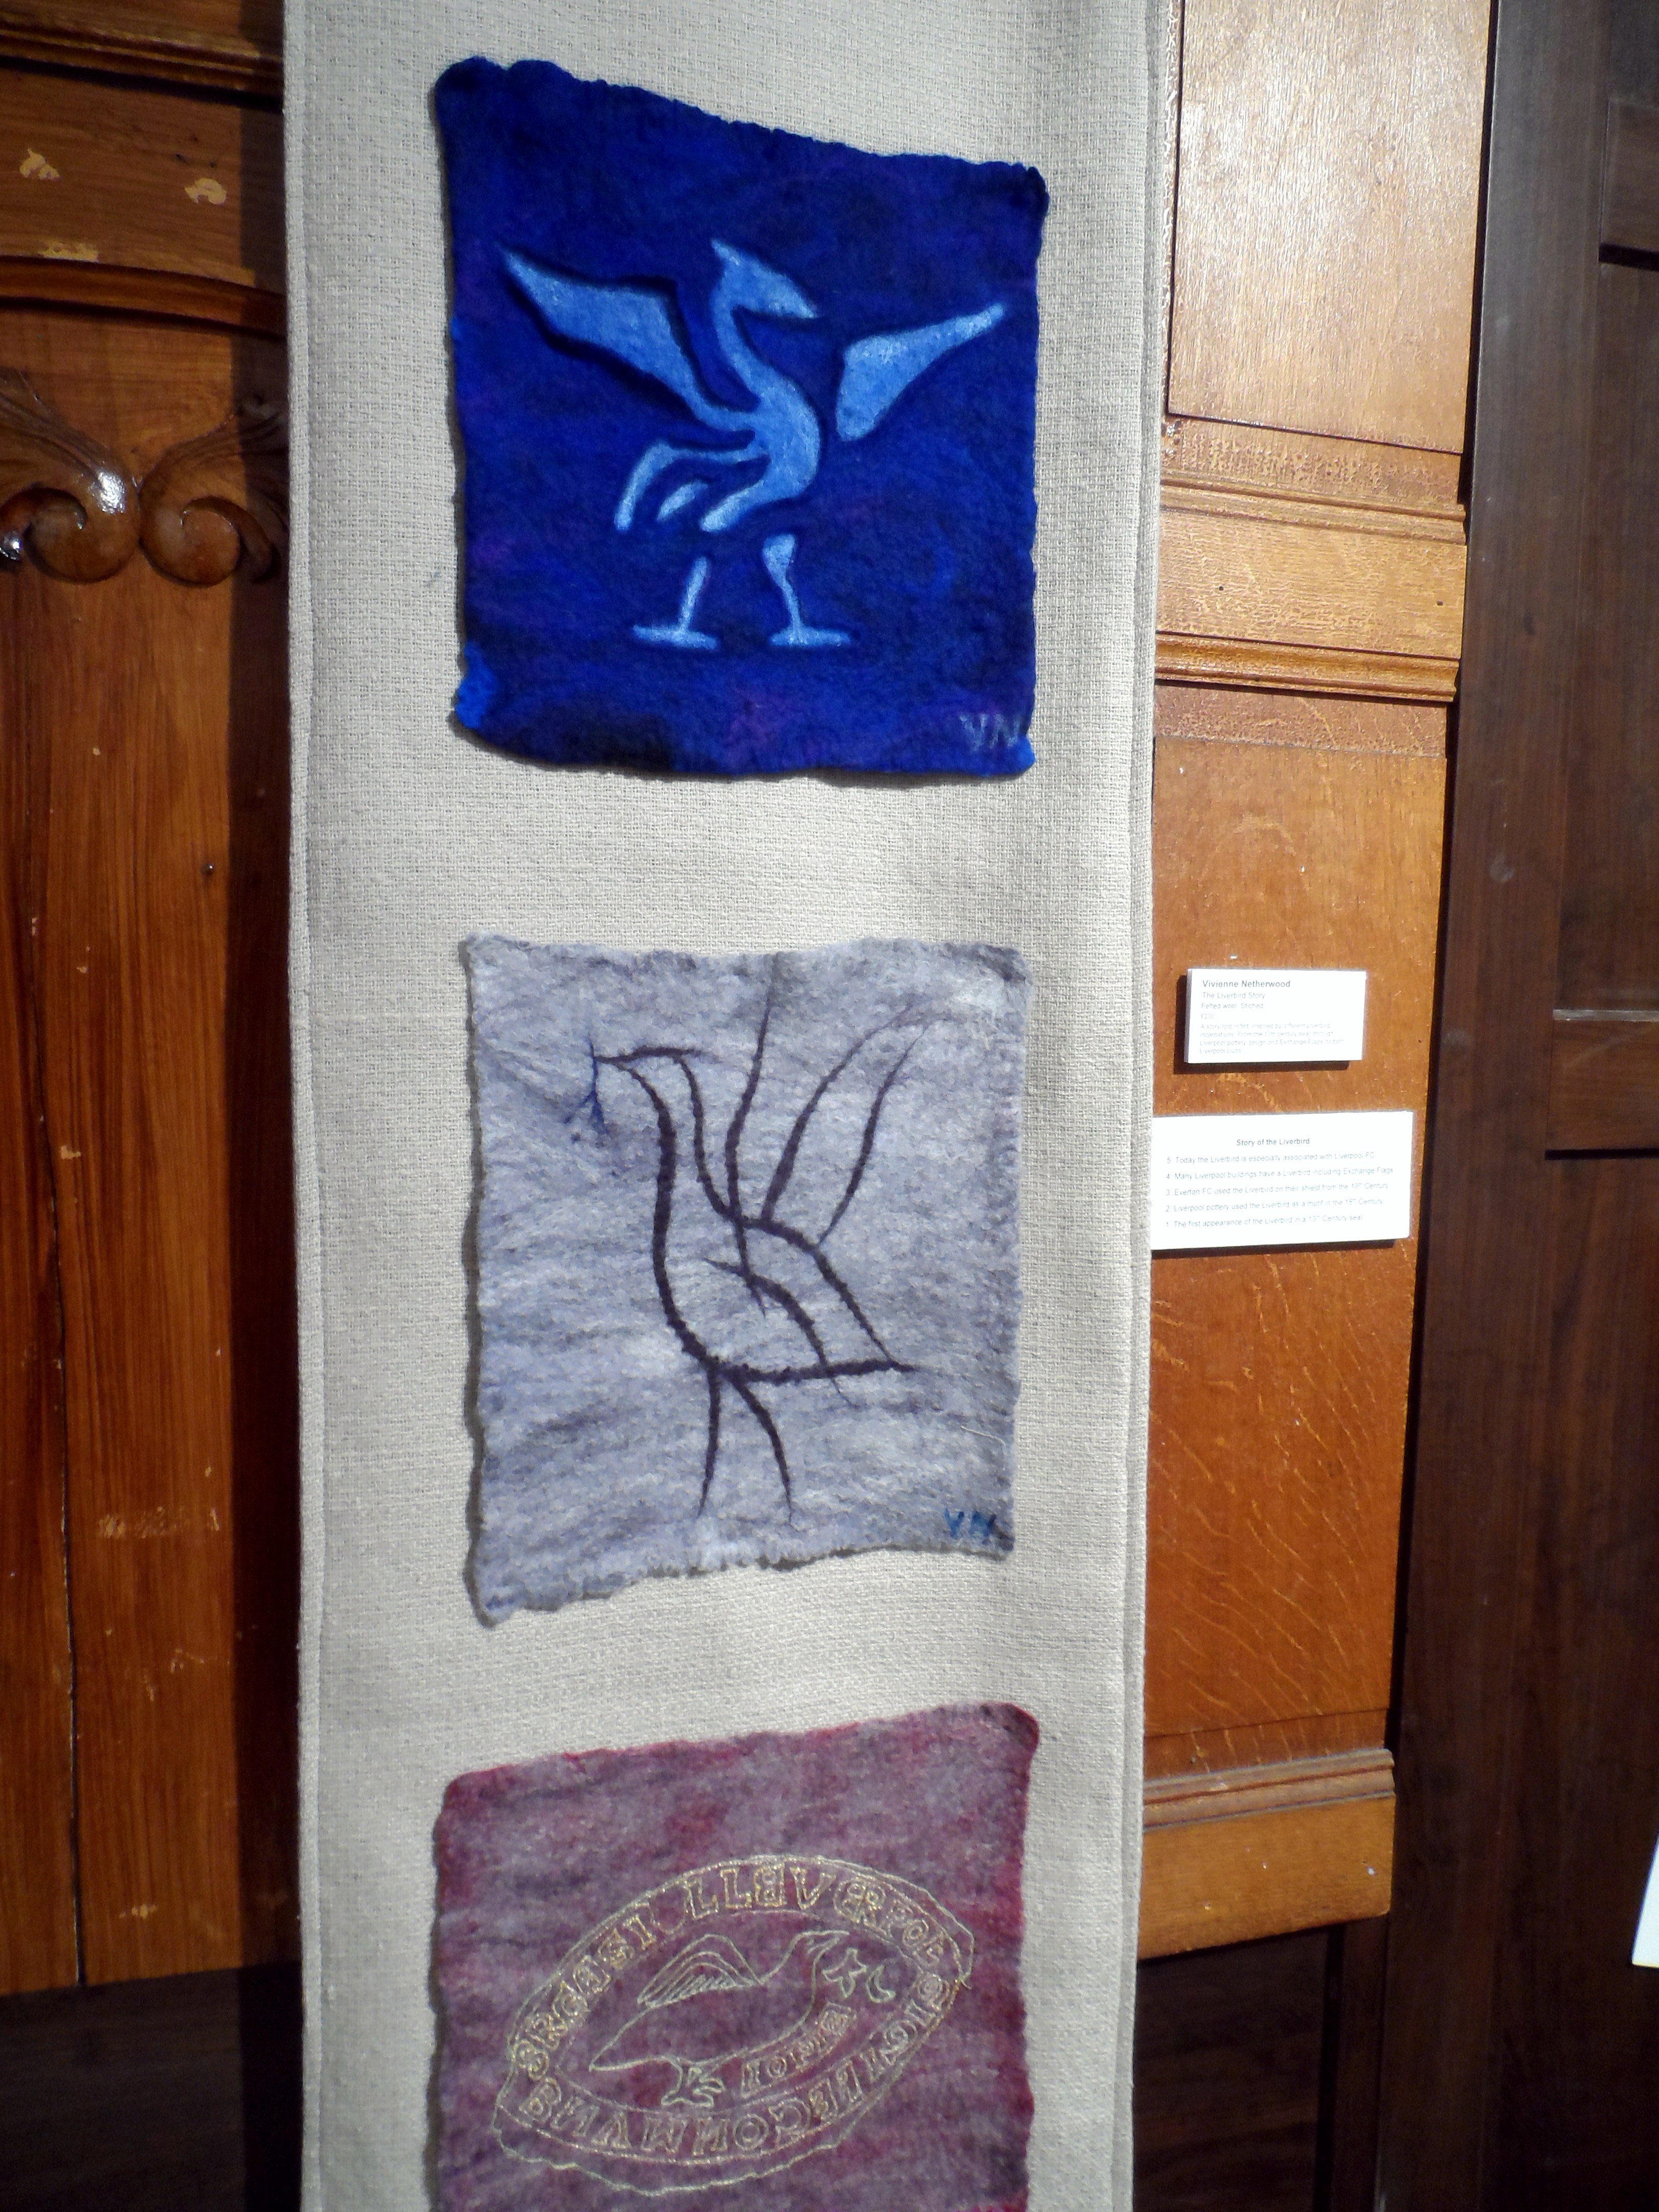 (detail) THE LIVERBIRD STORY by Vivienne Netherwood, felted wool, stitched, Re-View Textile exhibition, Nov 2019